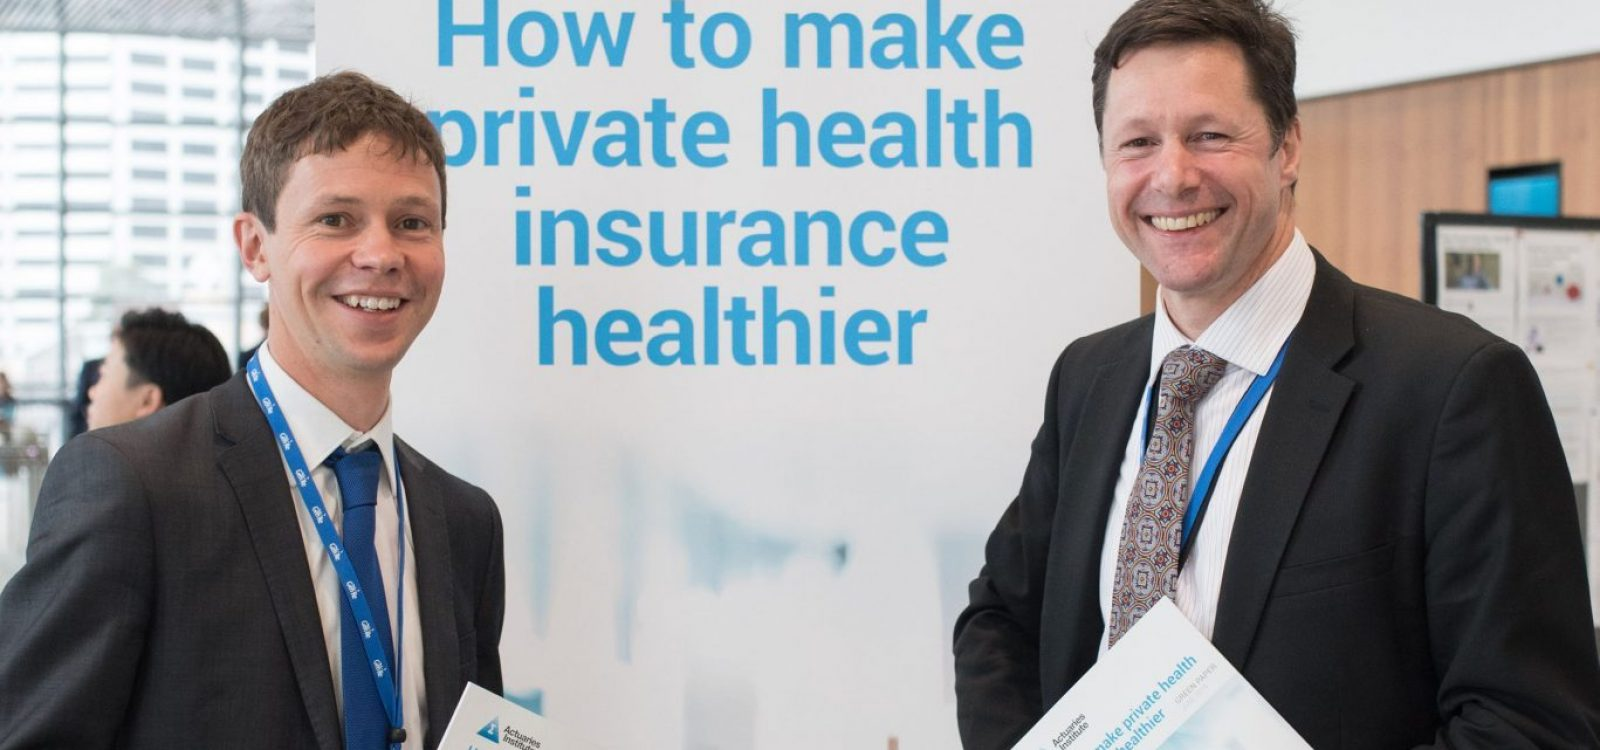 Making private health insurance healthier